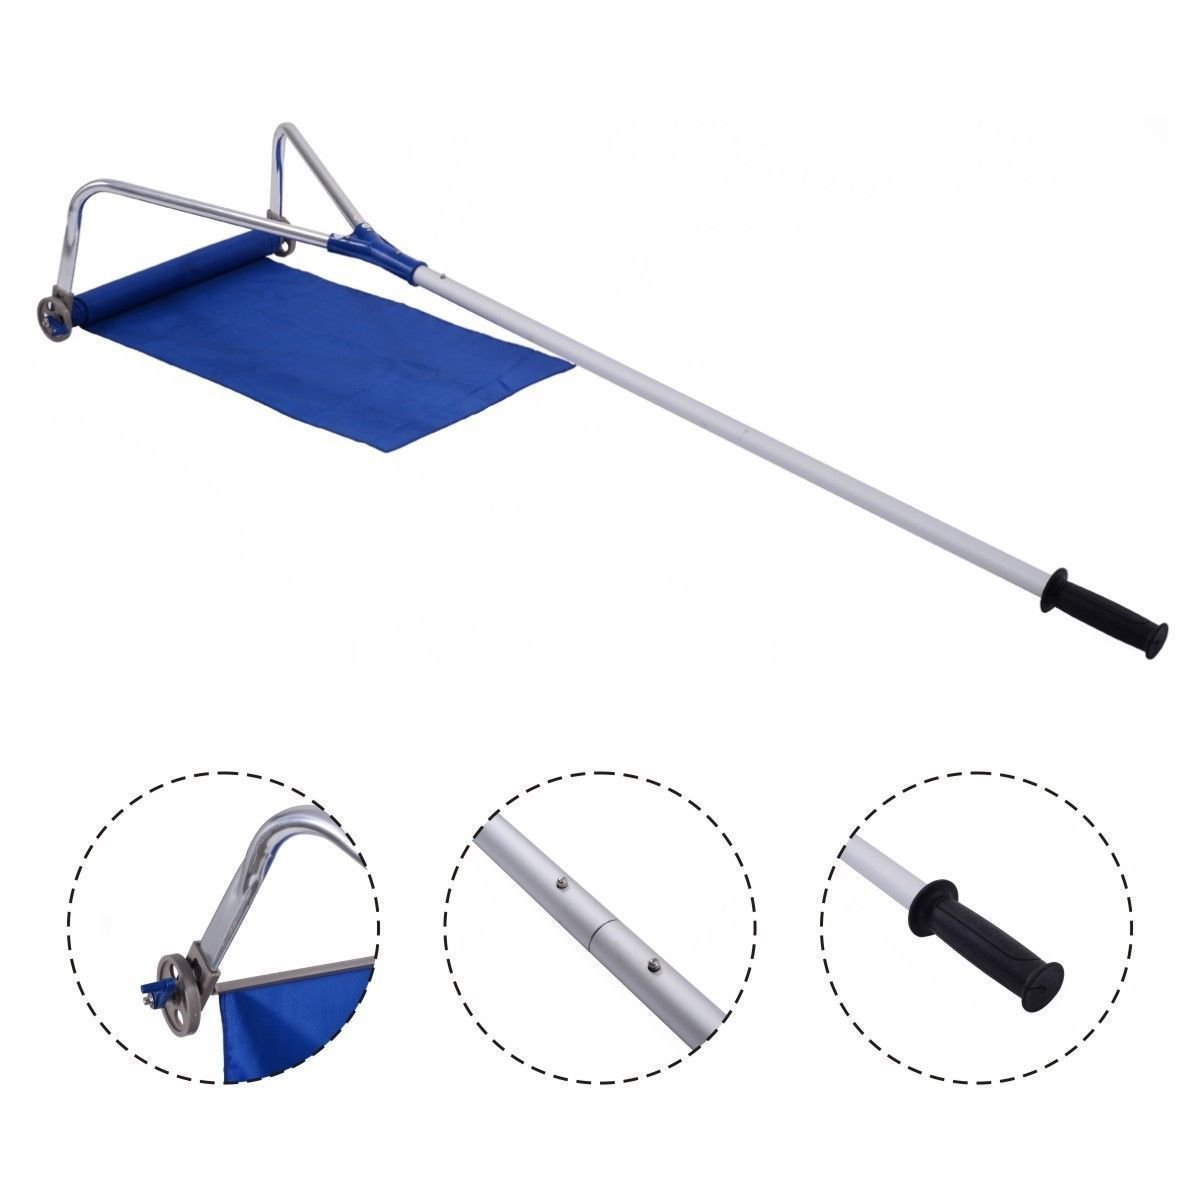 20FT Adjustable Telescoping Handle Lightweight Roof Rake Snow Removal Tool by Allblessings